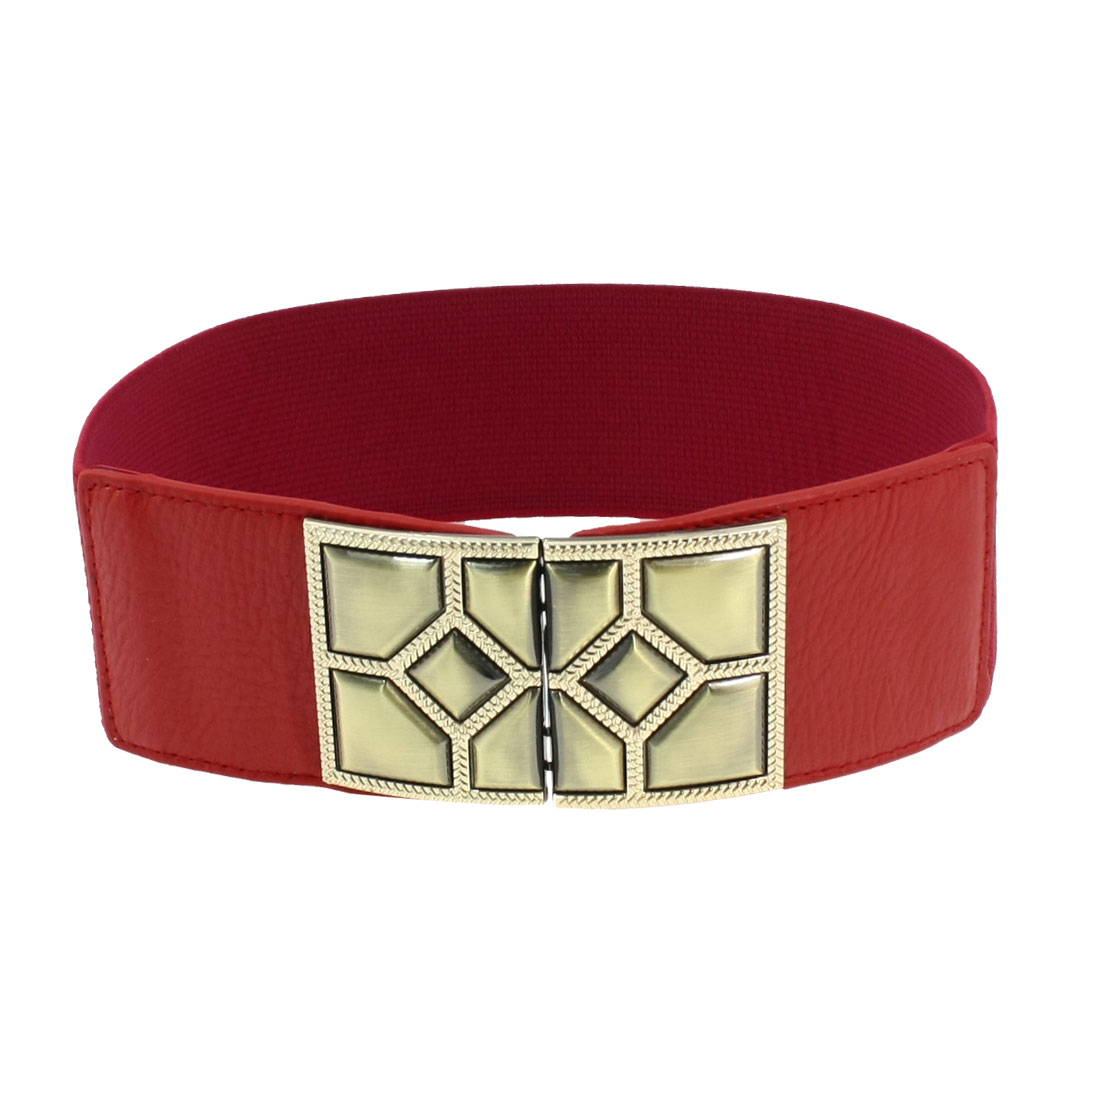 Metal Interlock Buckle Faux Leather Red Textured Elastic Belt for Woman